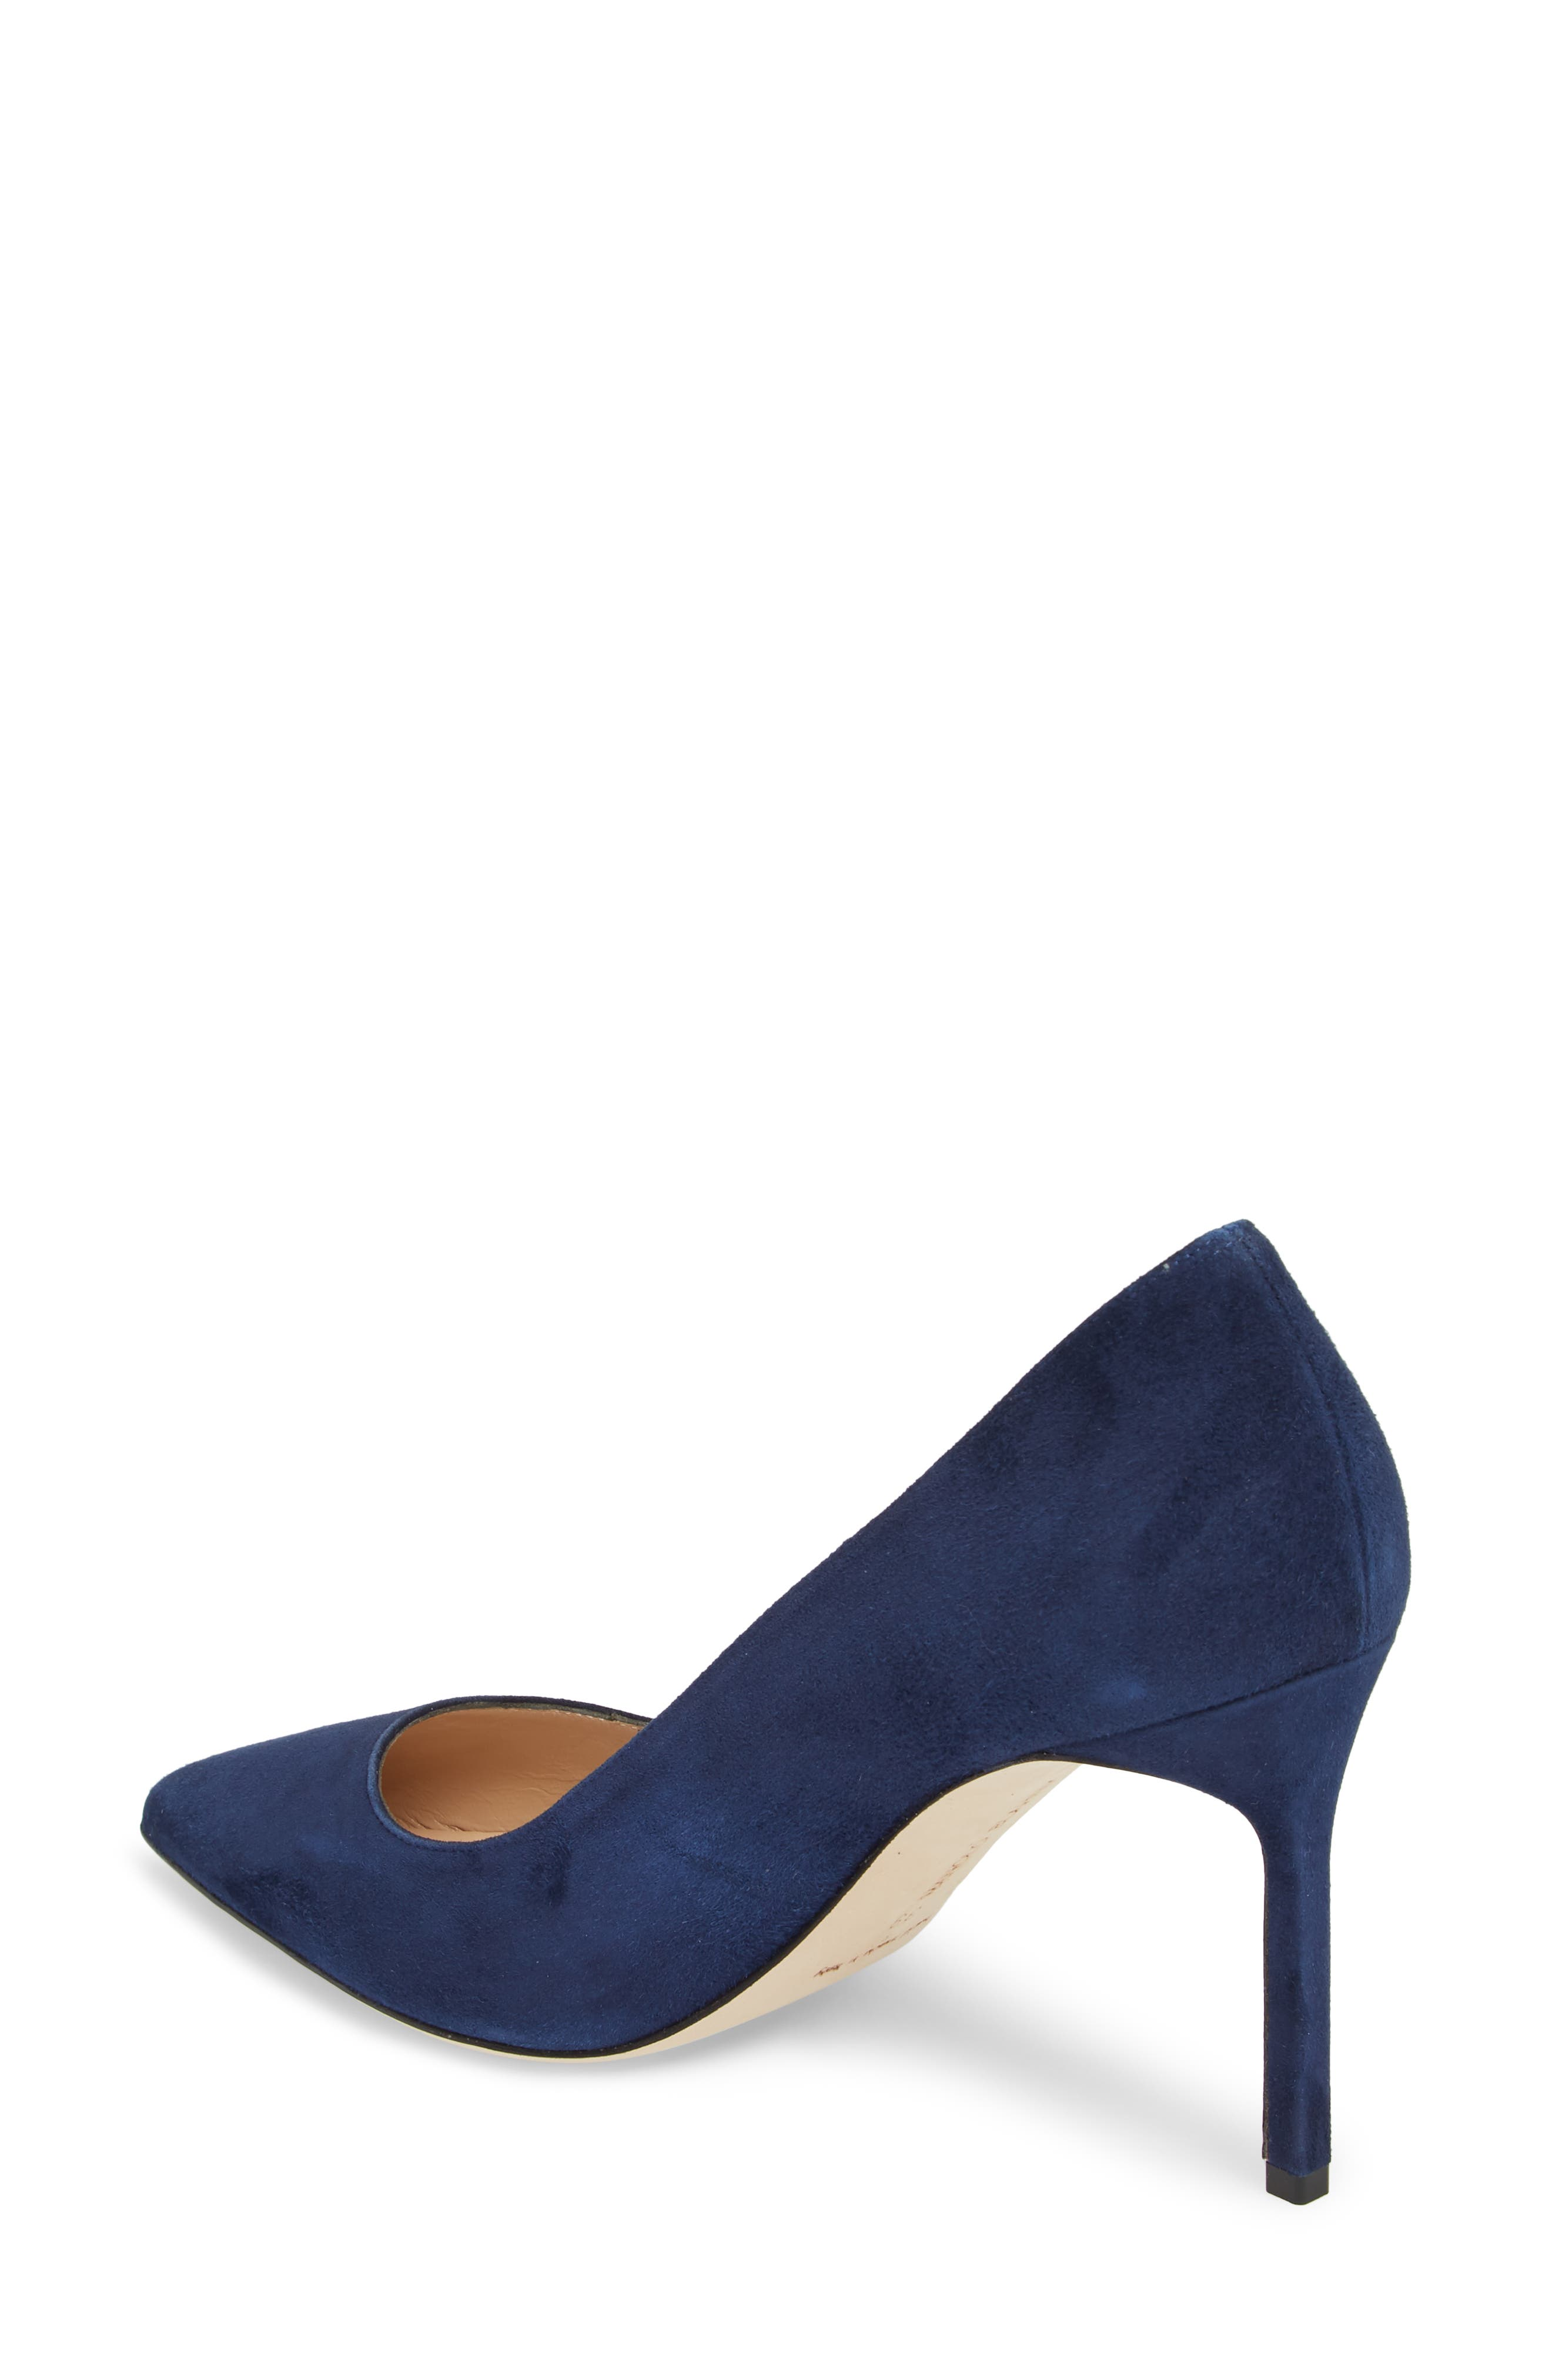 BB Pointy Toe Pump,                             Alternate thumbnail 2, color,                             NAVY SUEDE